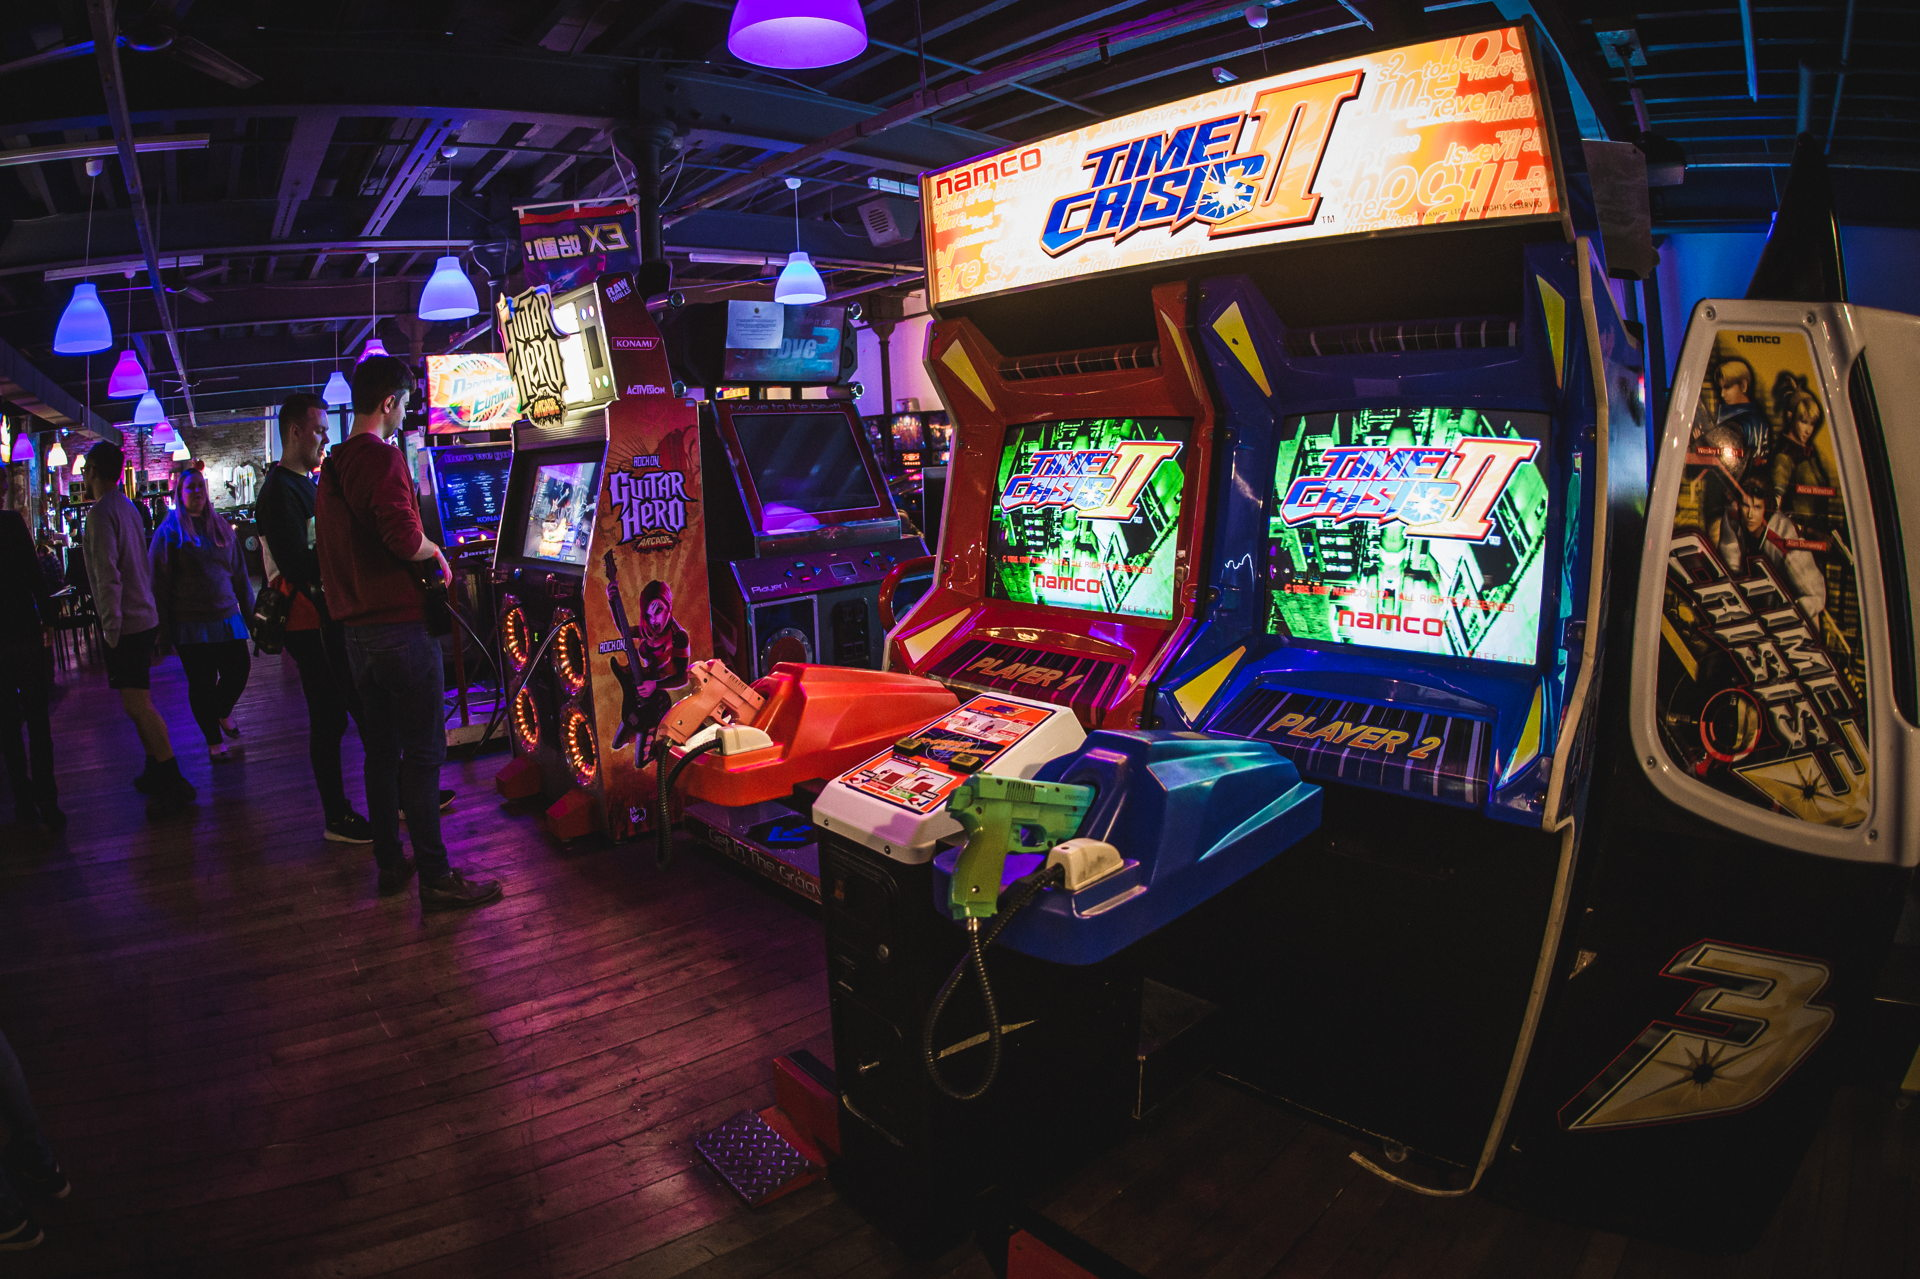 Arcade Club Europe S Largest Free Play Video Pinball Arcade In Bury Leeds More Than 300 Modern And Classic Arcades